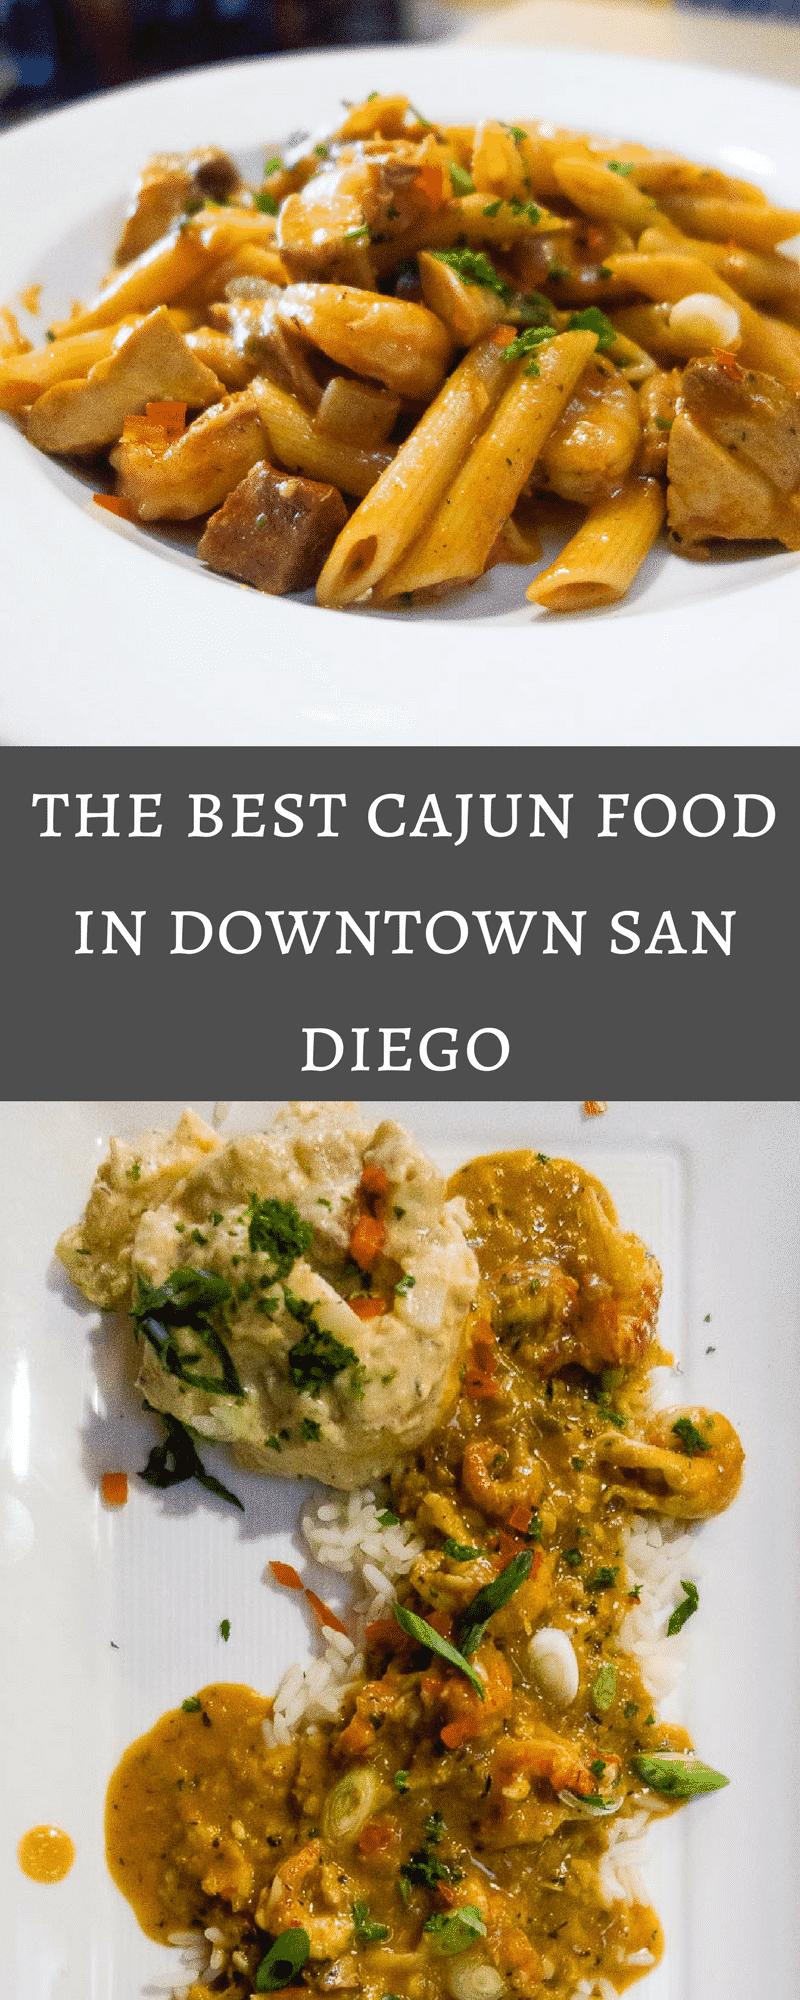 Where to find the best Cajun food in downtown San Diego. The most amazing gumbo, jambalaya, etouffee, and alligator sausage in San Diego! san diego restaurants | best restaurants san Diego | cajun food san diego | cajun restaurants san diego | new Orleans food | best gumbo in san diego | bud and rob\'s louisiana bistro | new orleans eats in san diego | best creole food in san diego